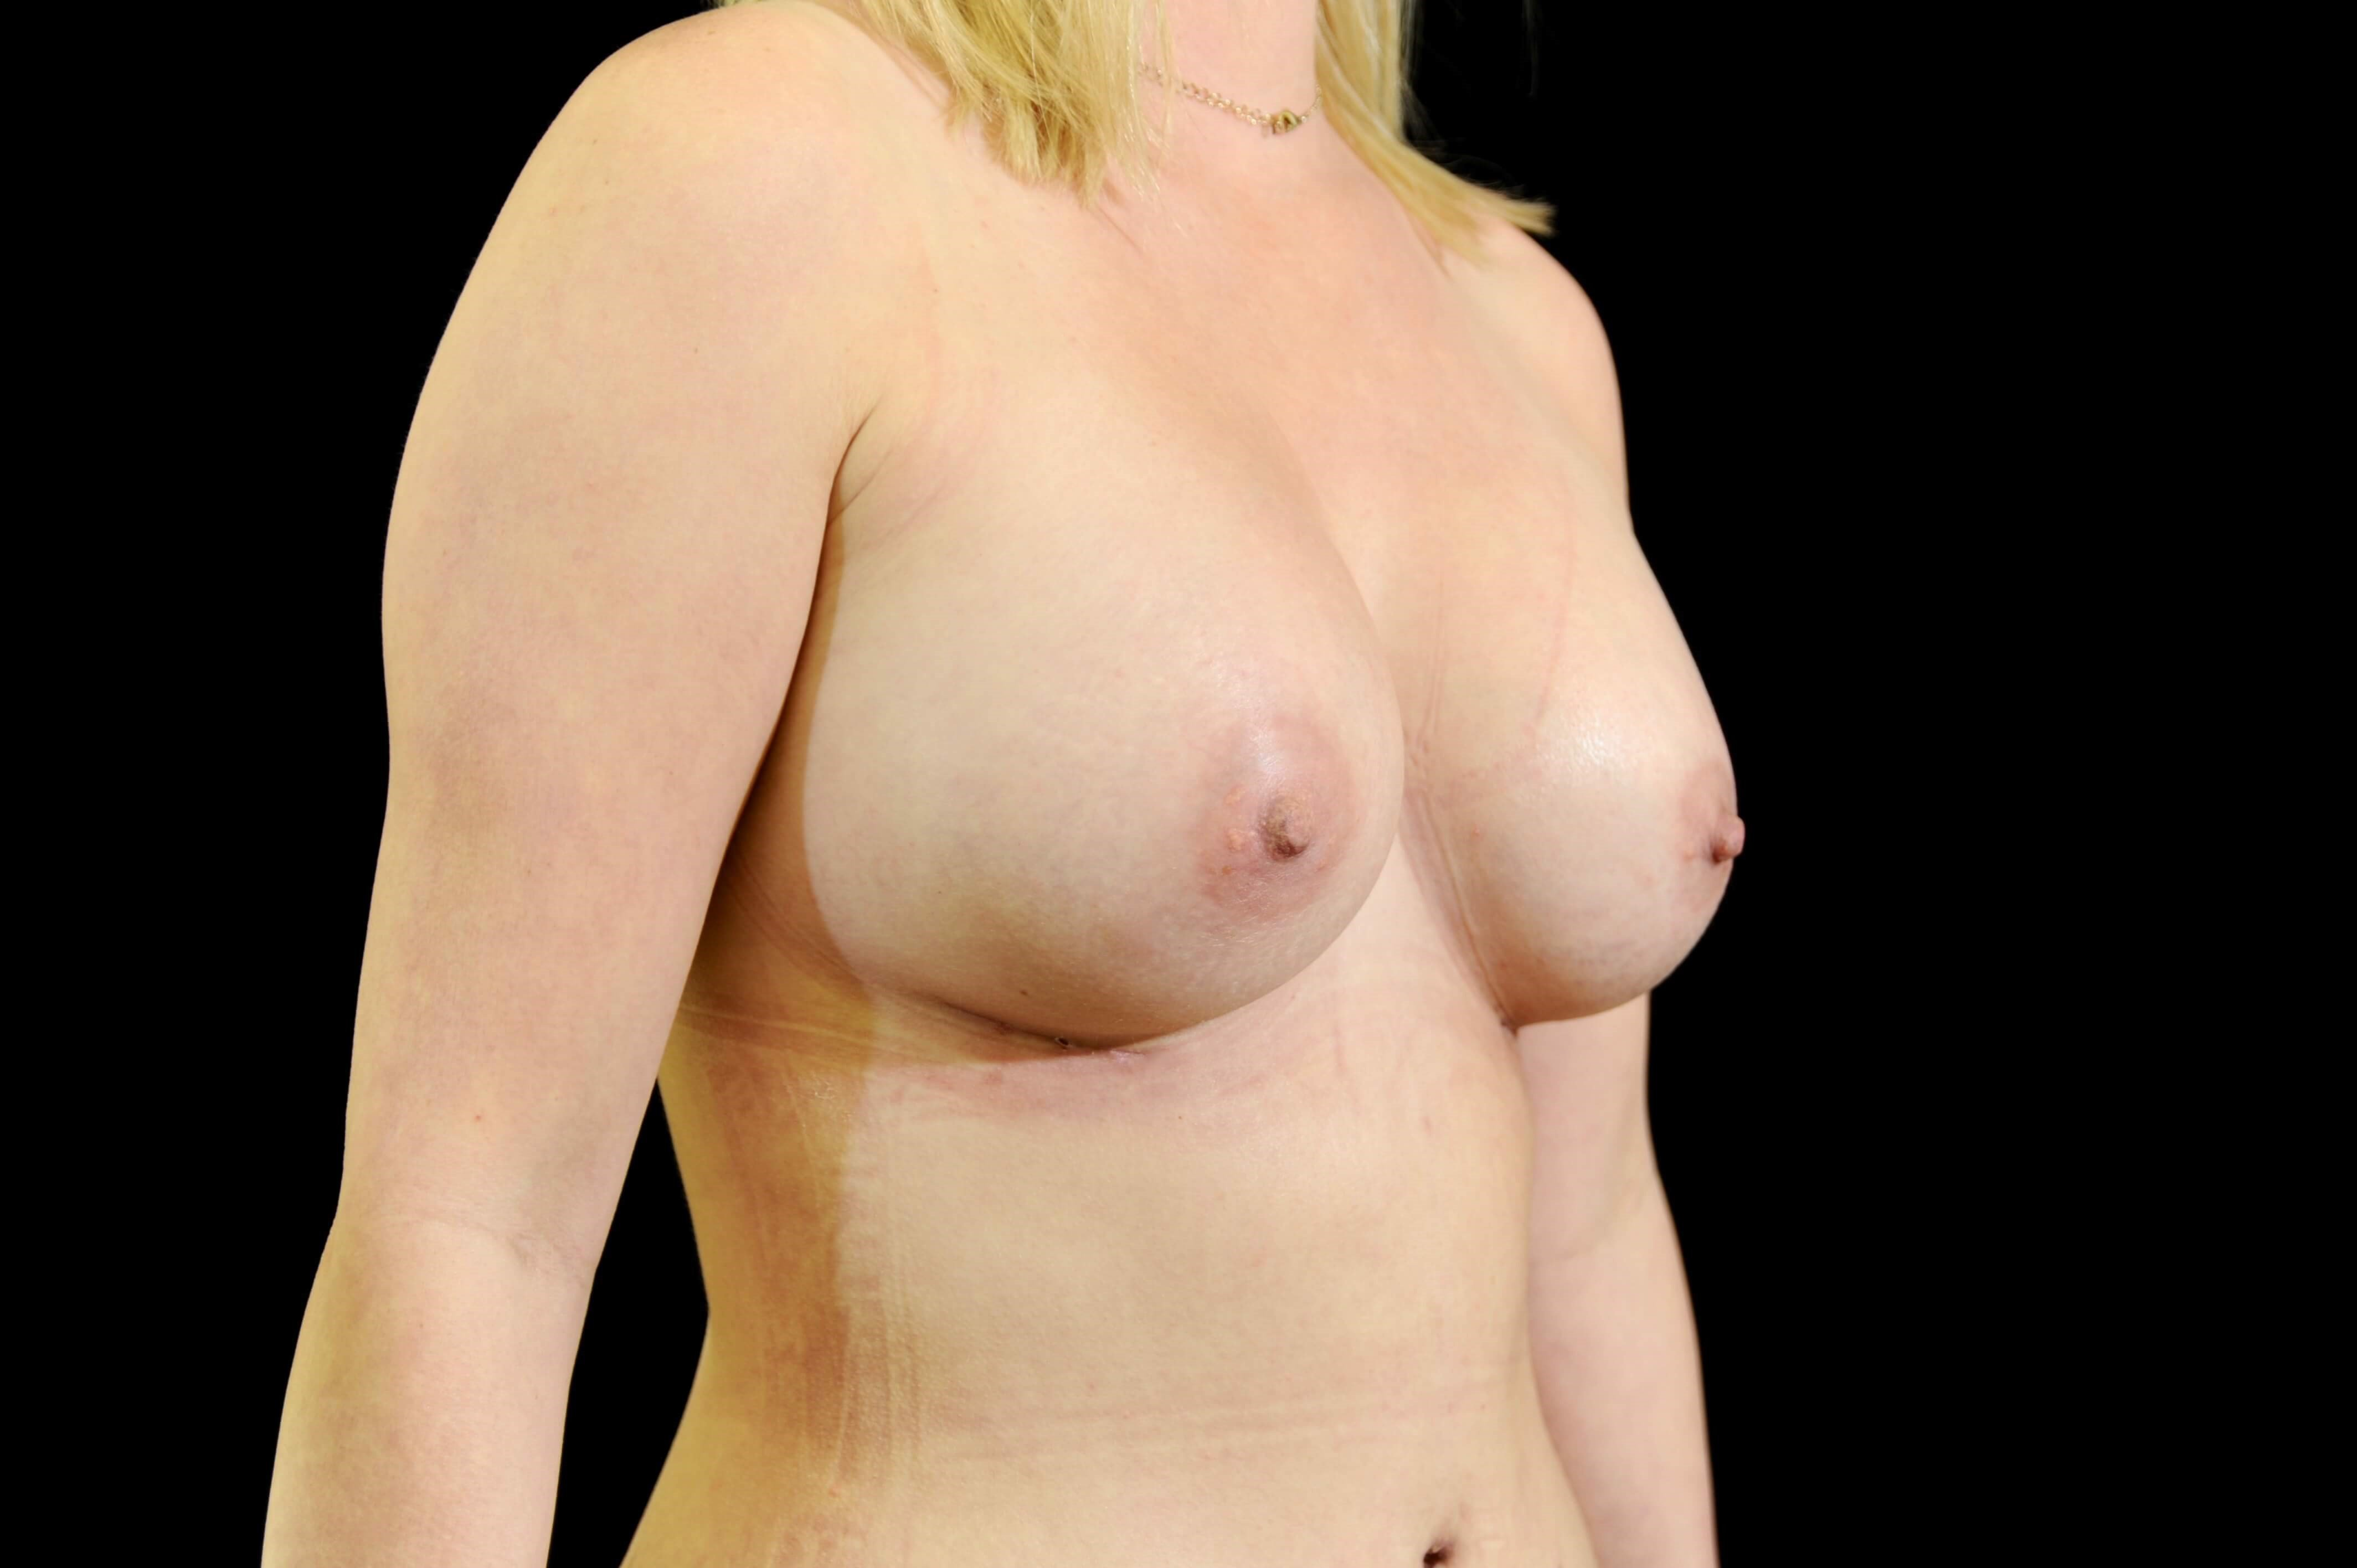 Breast Augmentation After Breast Implants